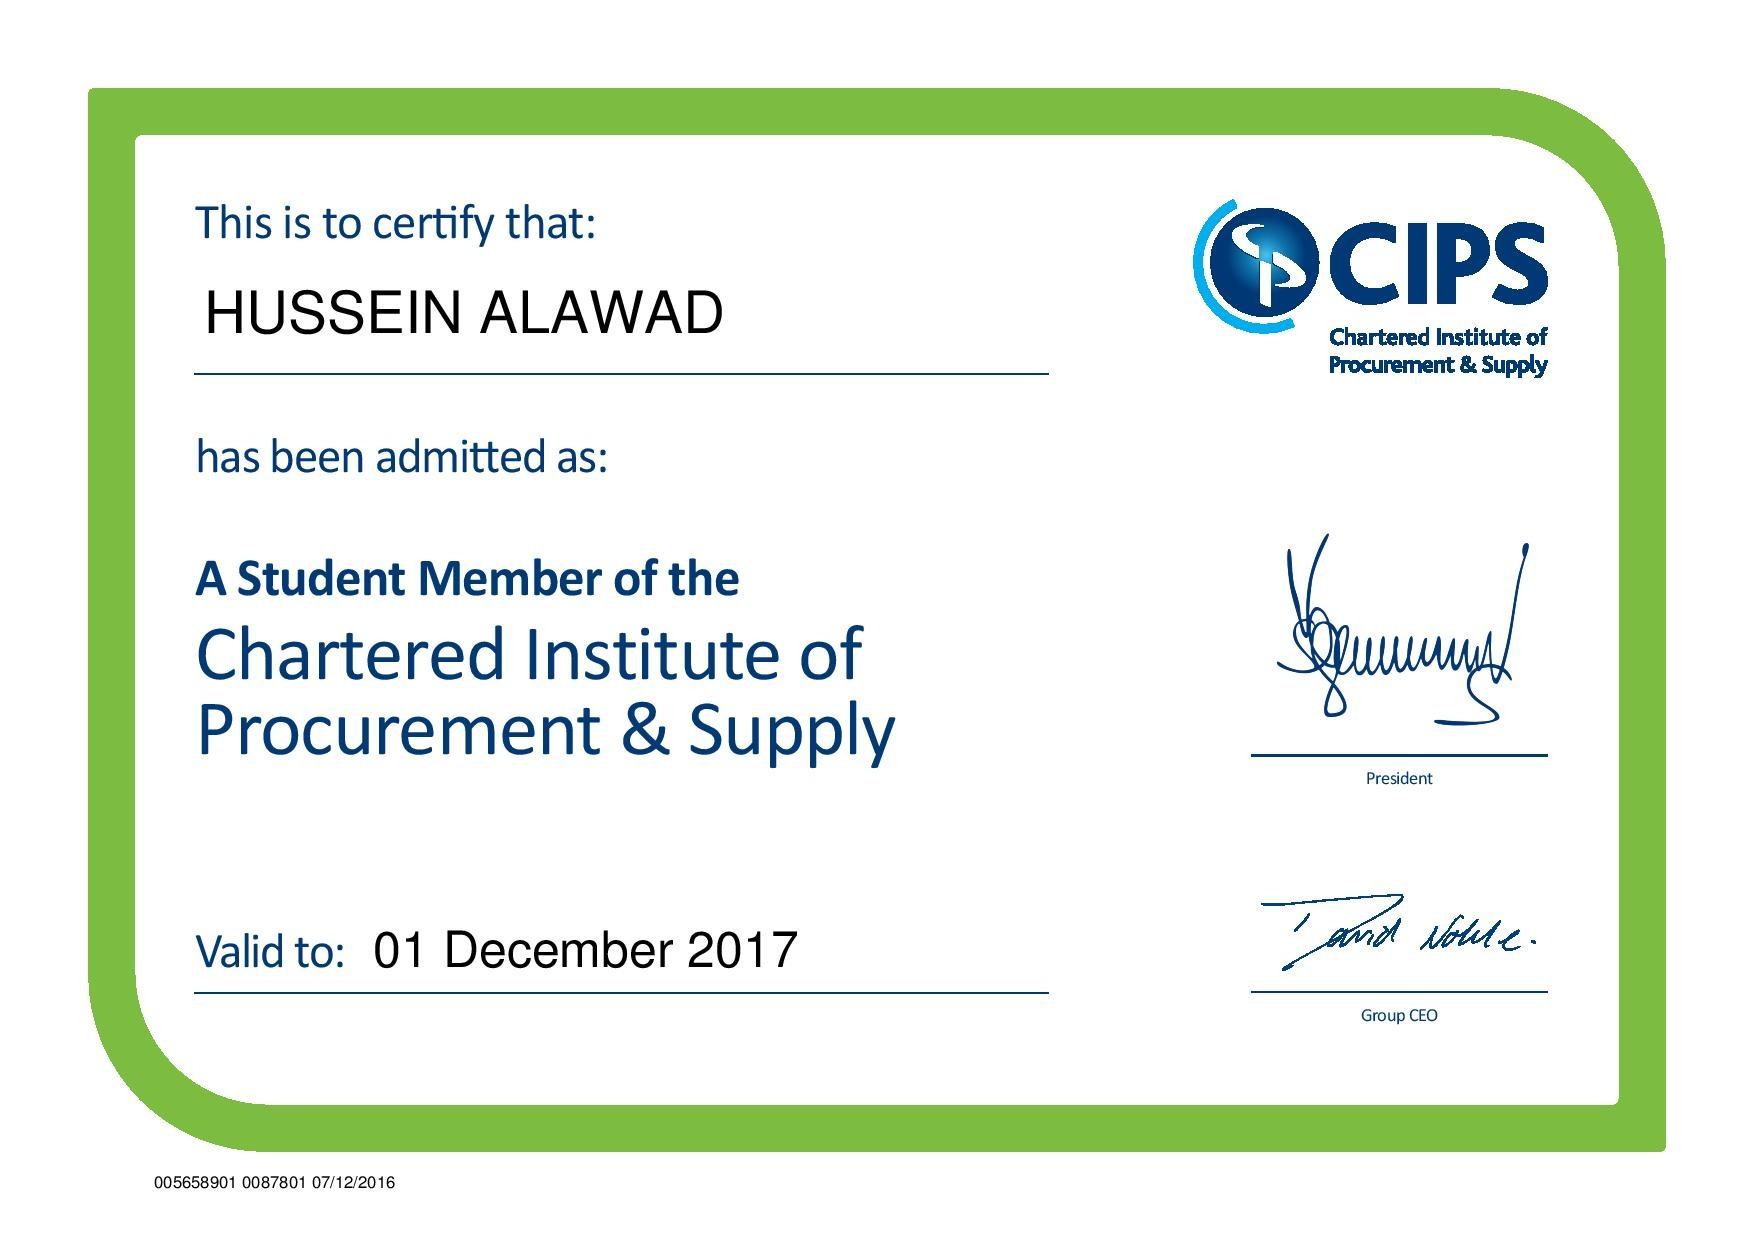 Hussein al awad bayt a student member of the chartered institute of procurement supply cips certificate 1betcityfo Gallery